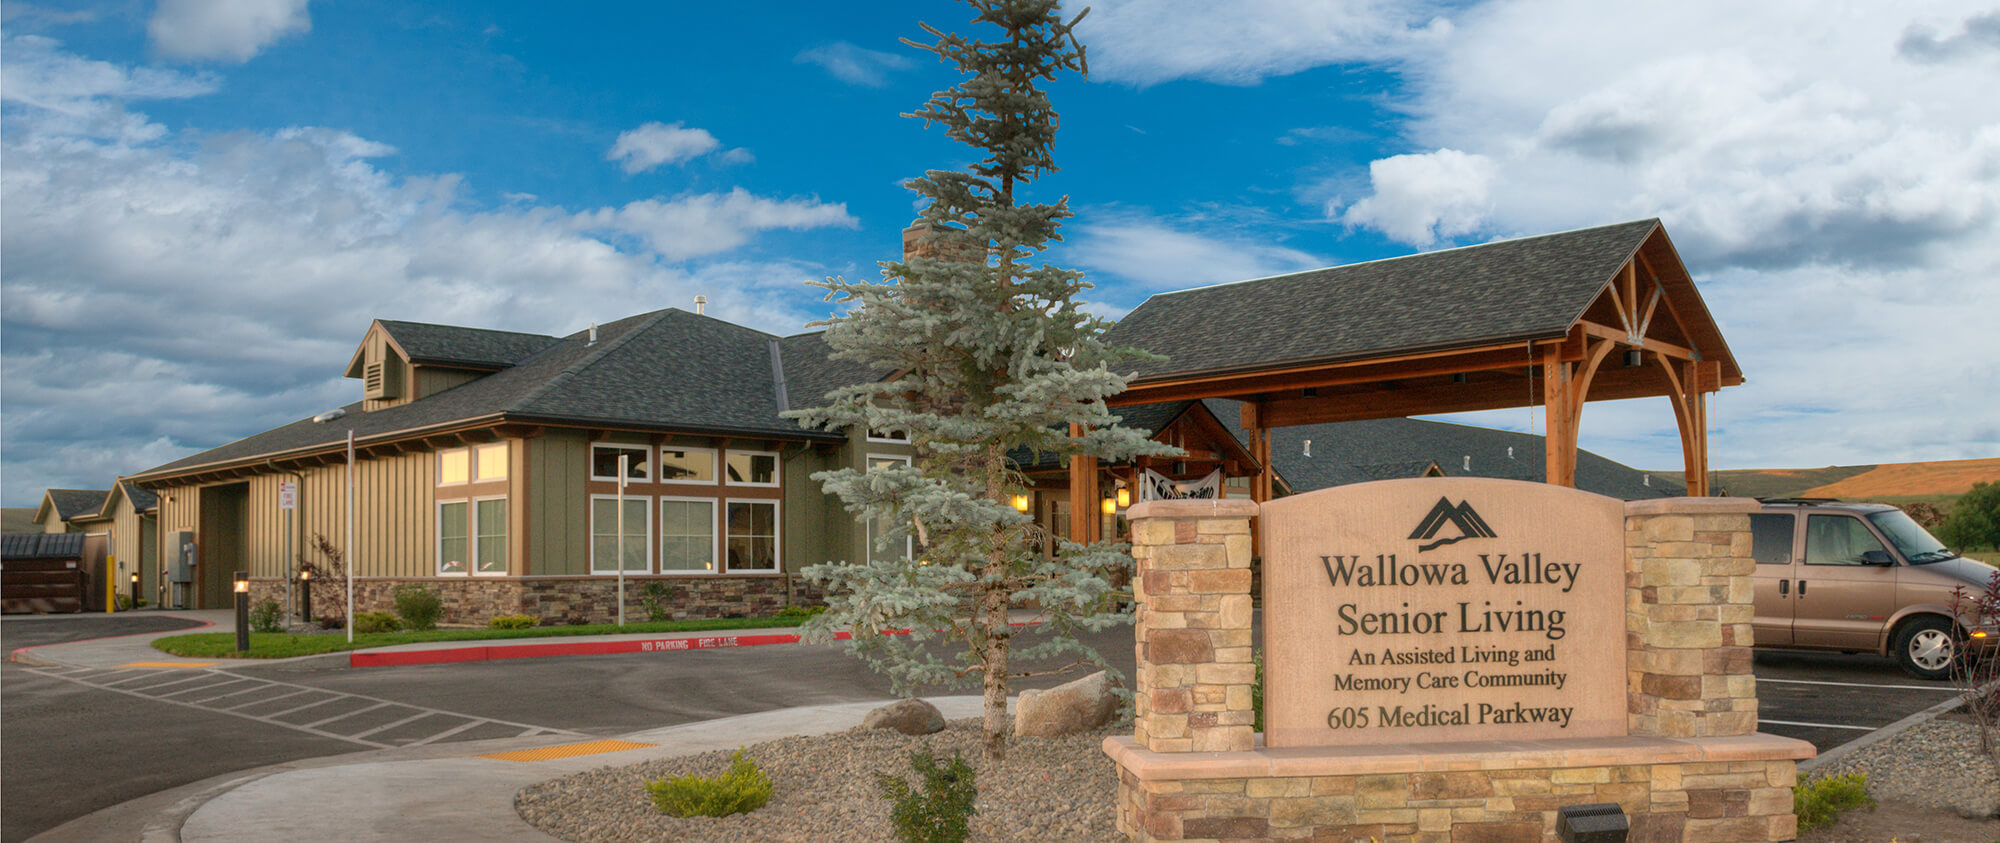 "wallowa senior singles The wallowa tour a spring tour of double or $543 single enjoy oregon's ""little when your reservation and payment are accepted at a groupactive llc/ senior."